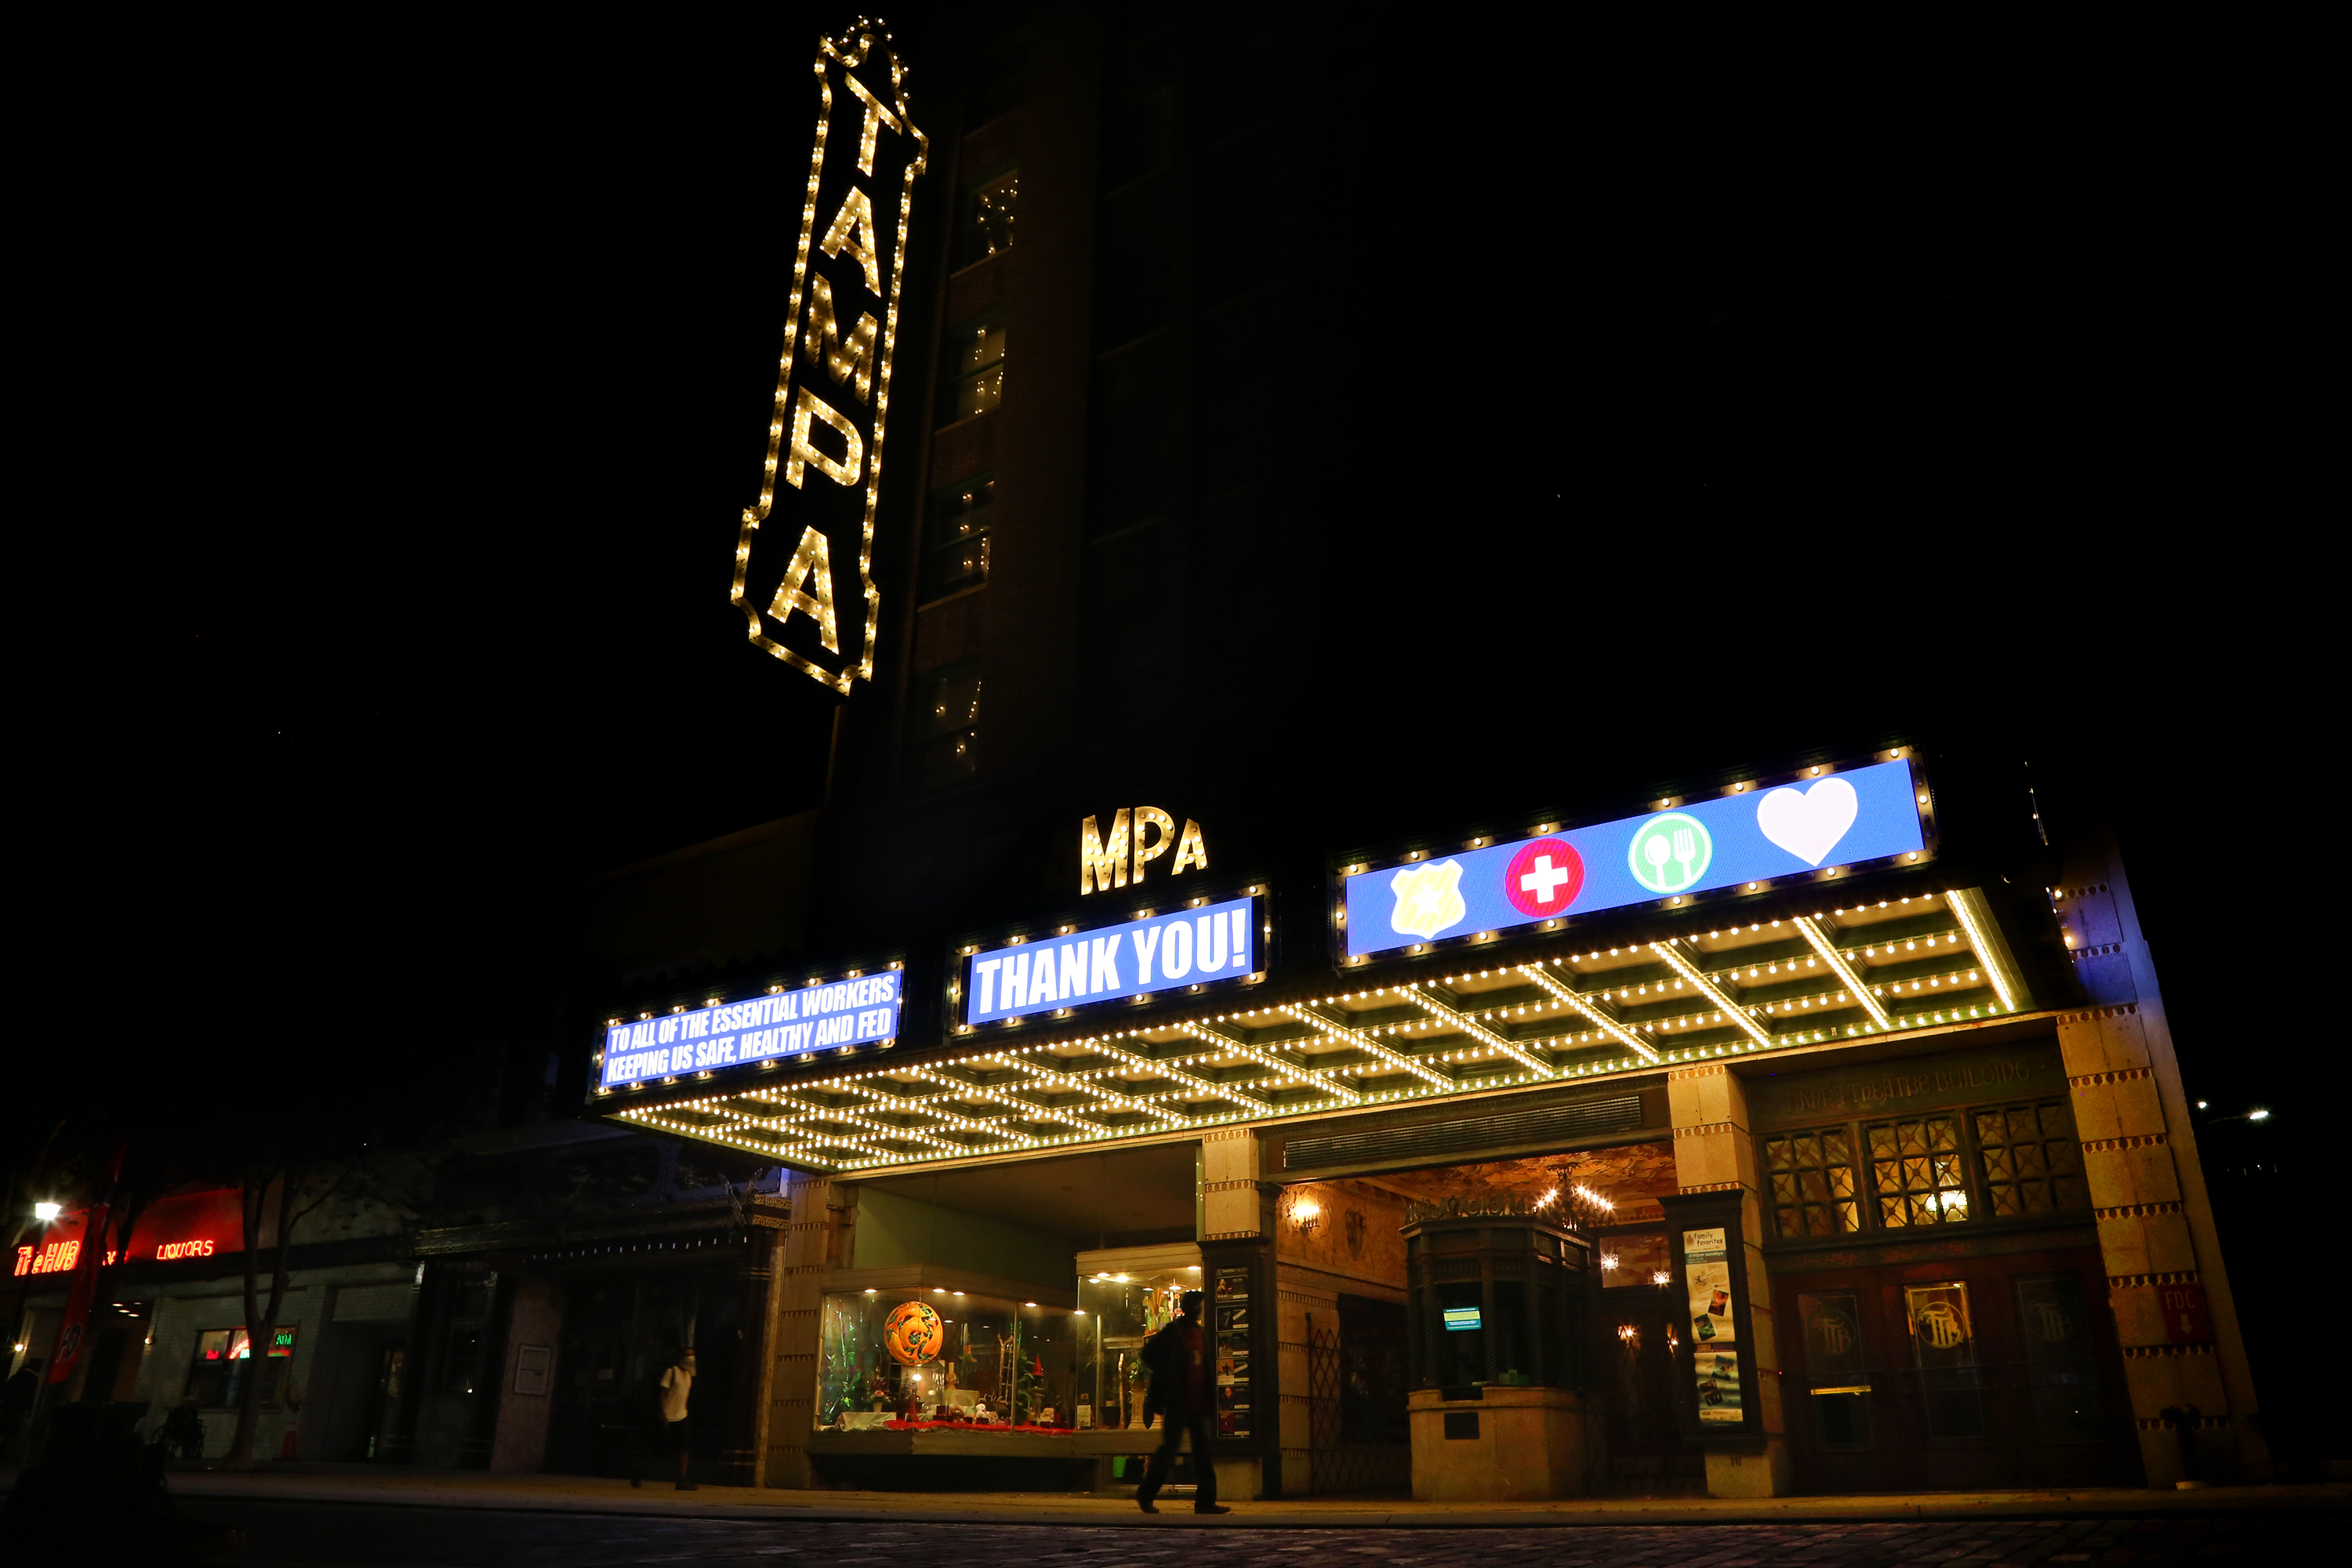 Even With The Green Light Florida Movie Theaters Are Unsure When They Ll Reopen Now part of southern theatres. https www tampabay com news business 2020 06 04 even with the green light florida movie theaters are unsure when theyll reopen